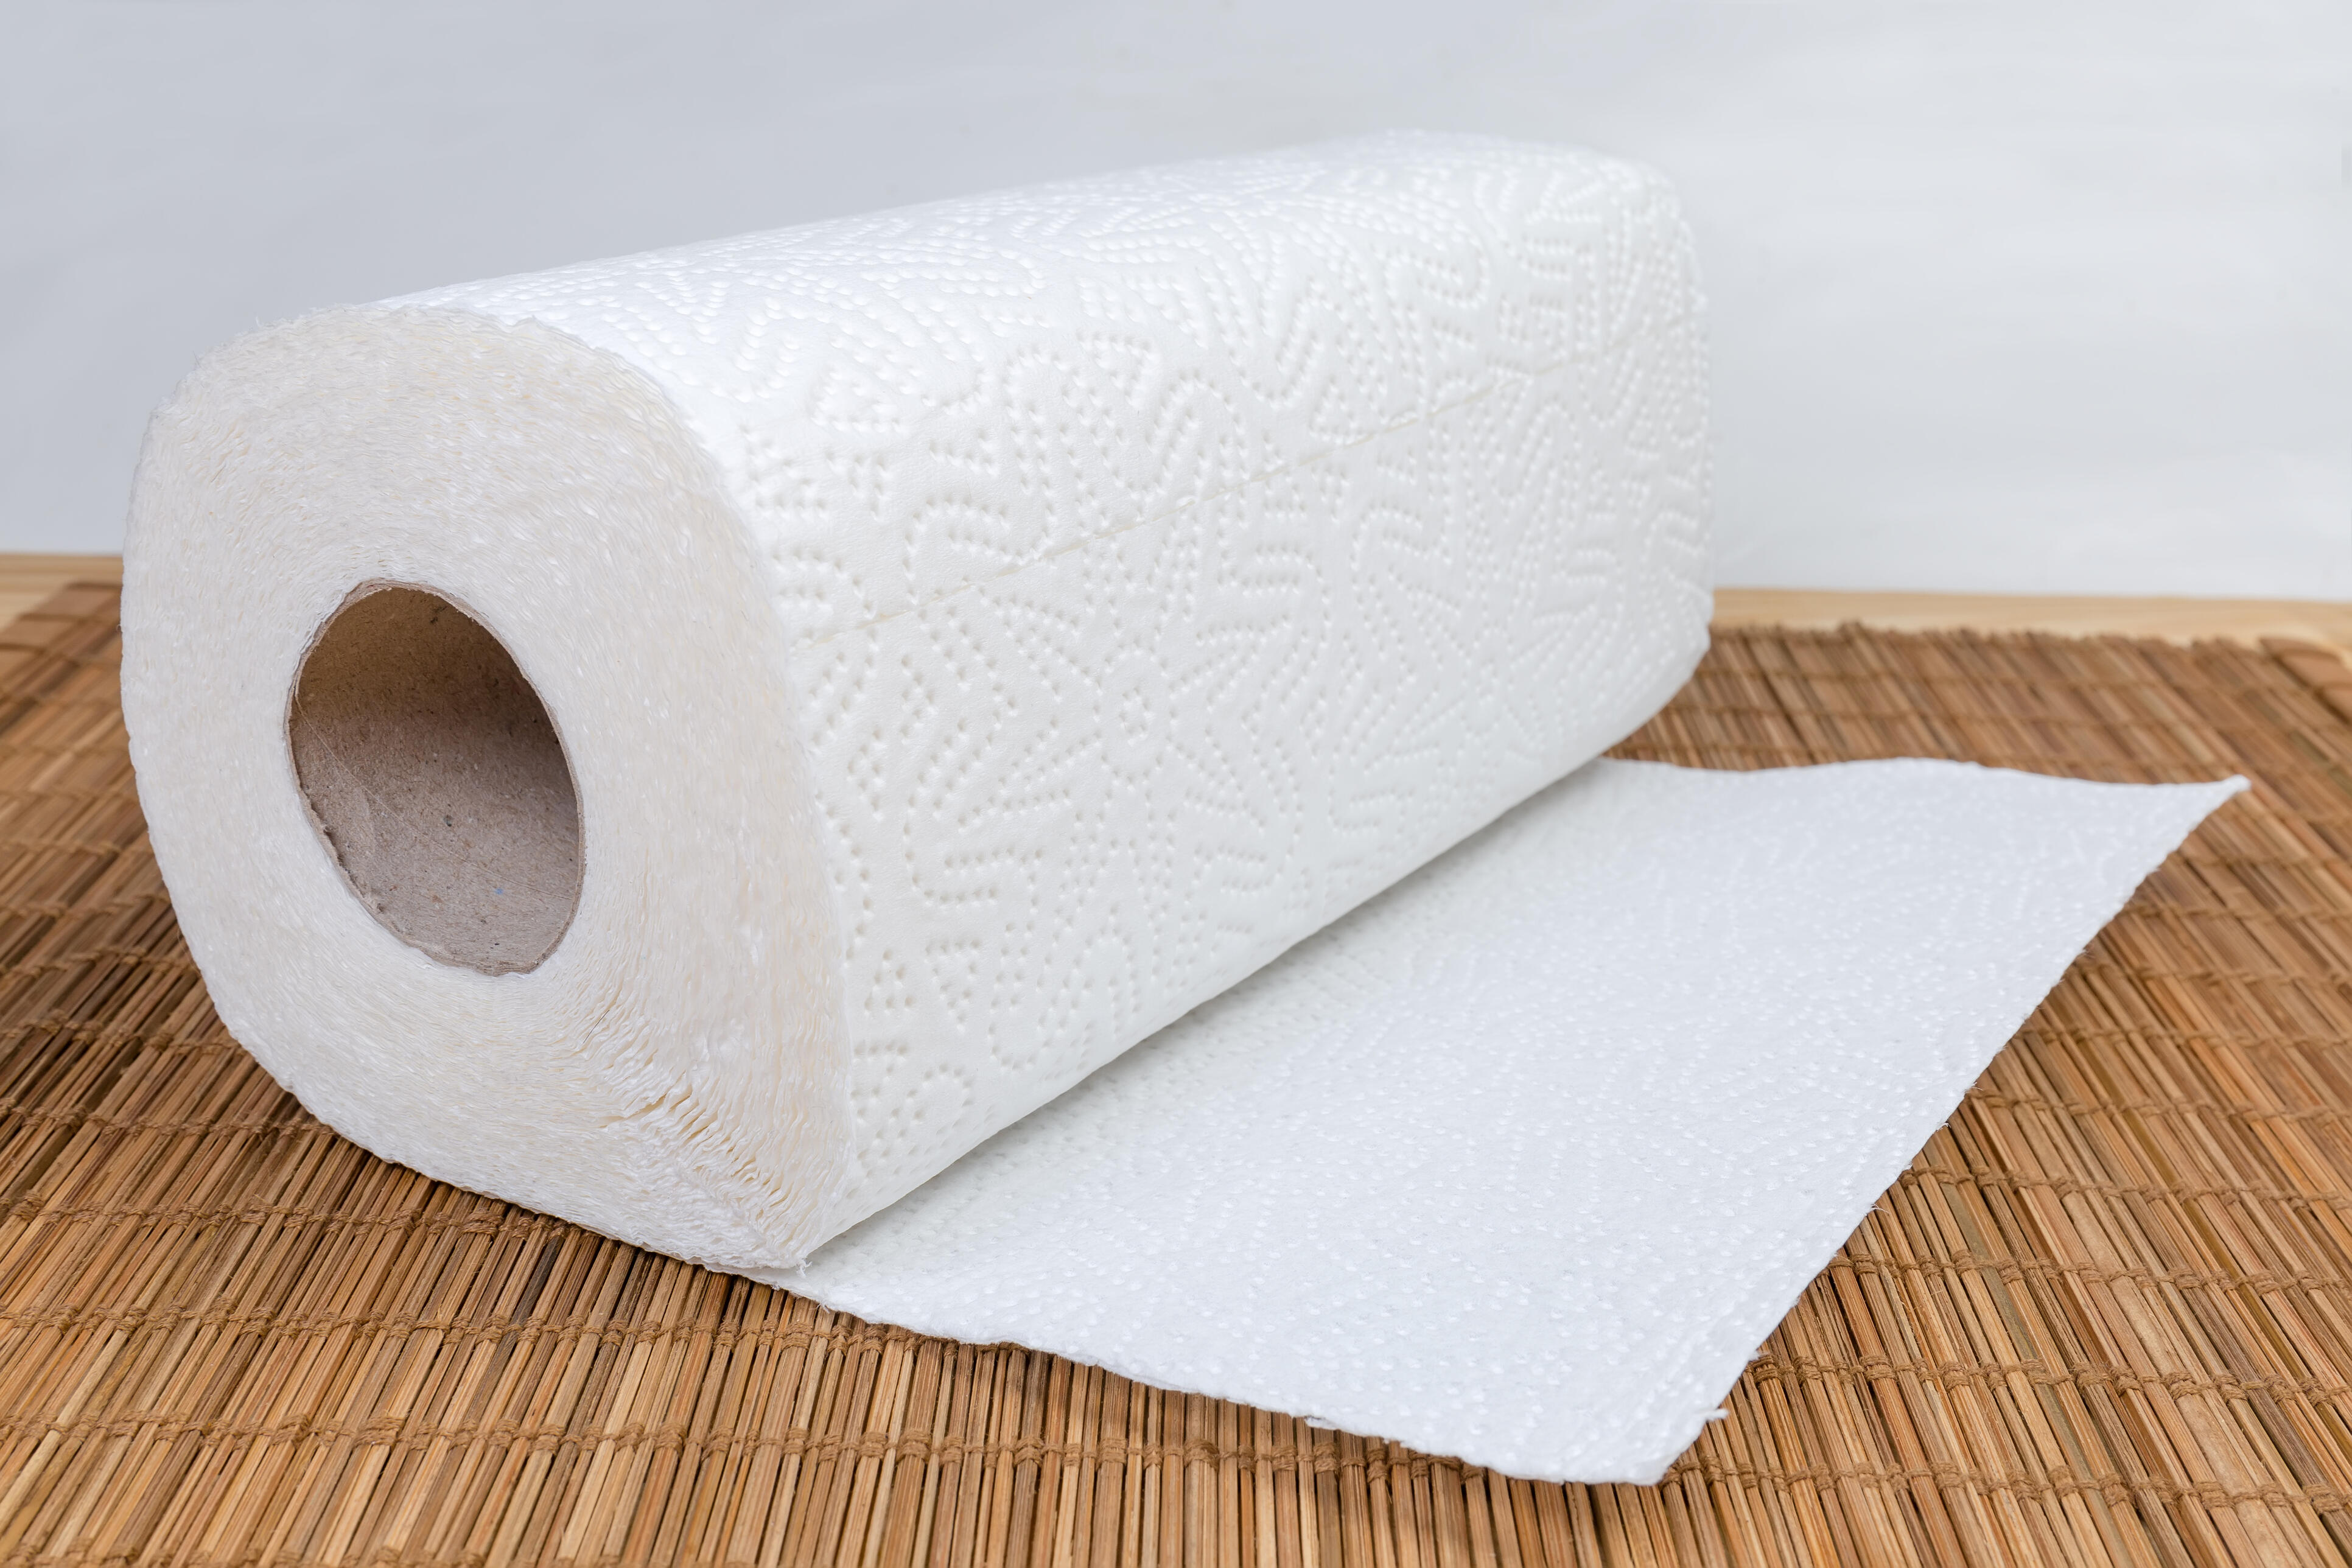 6 smart tips to conserve your paper towel supply at home - CNET